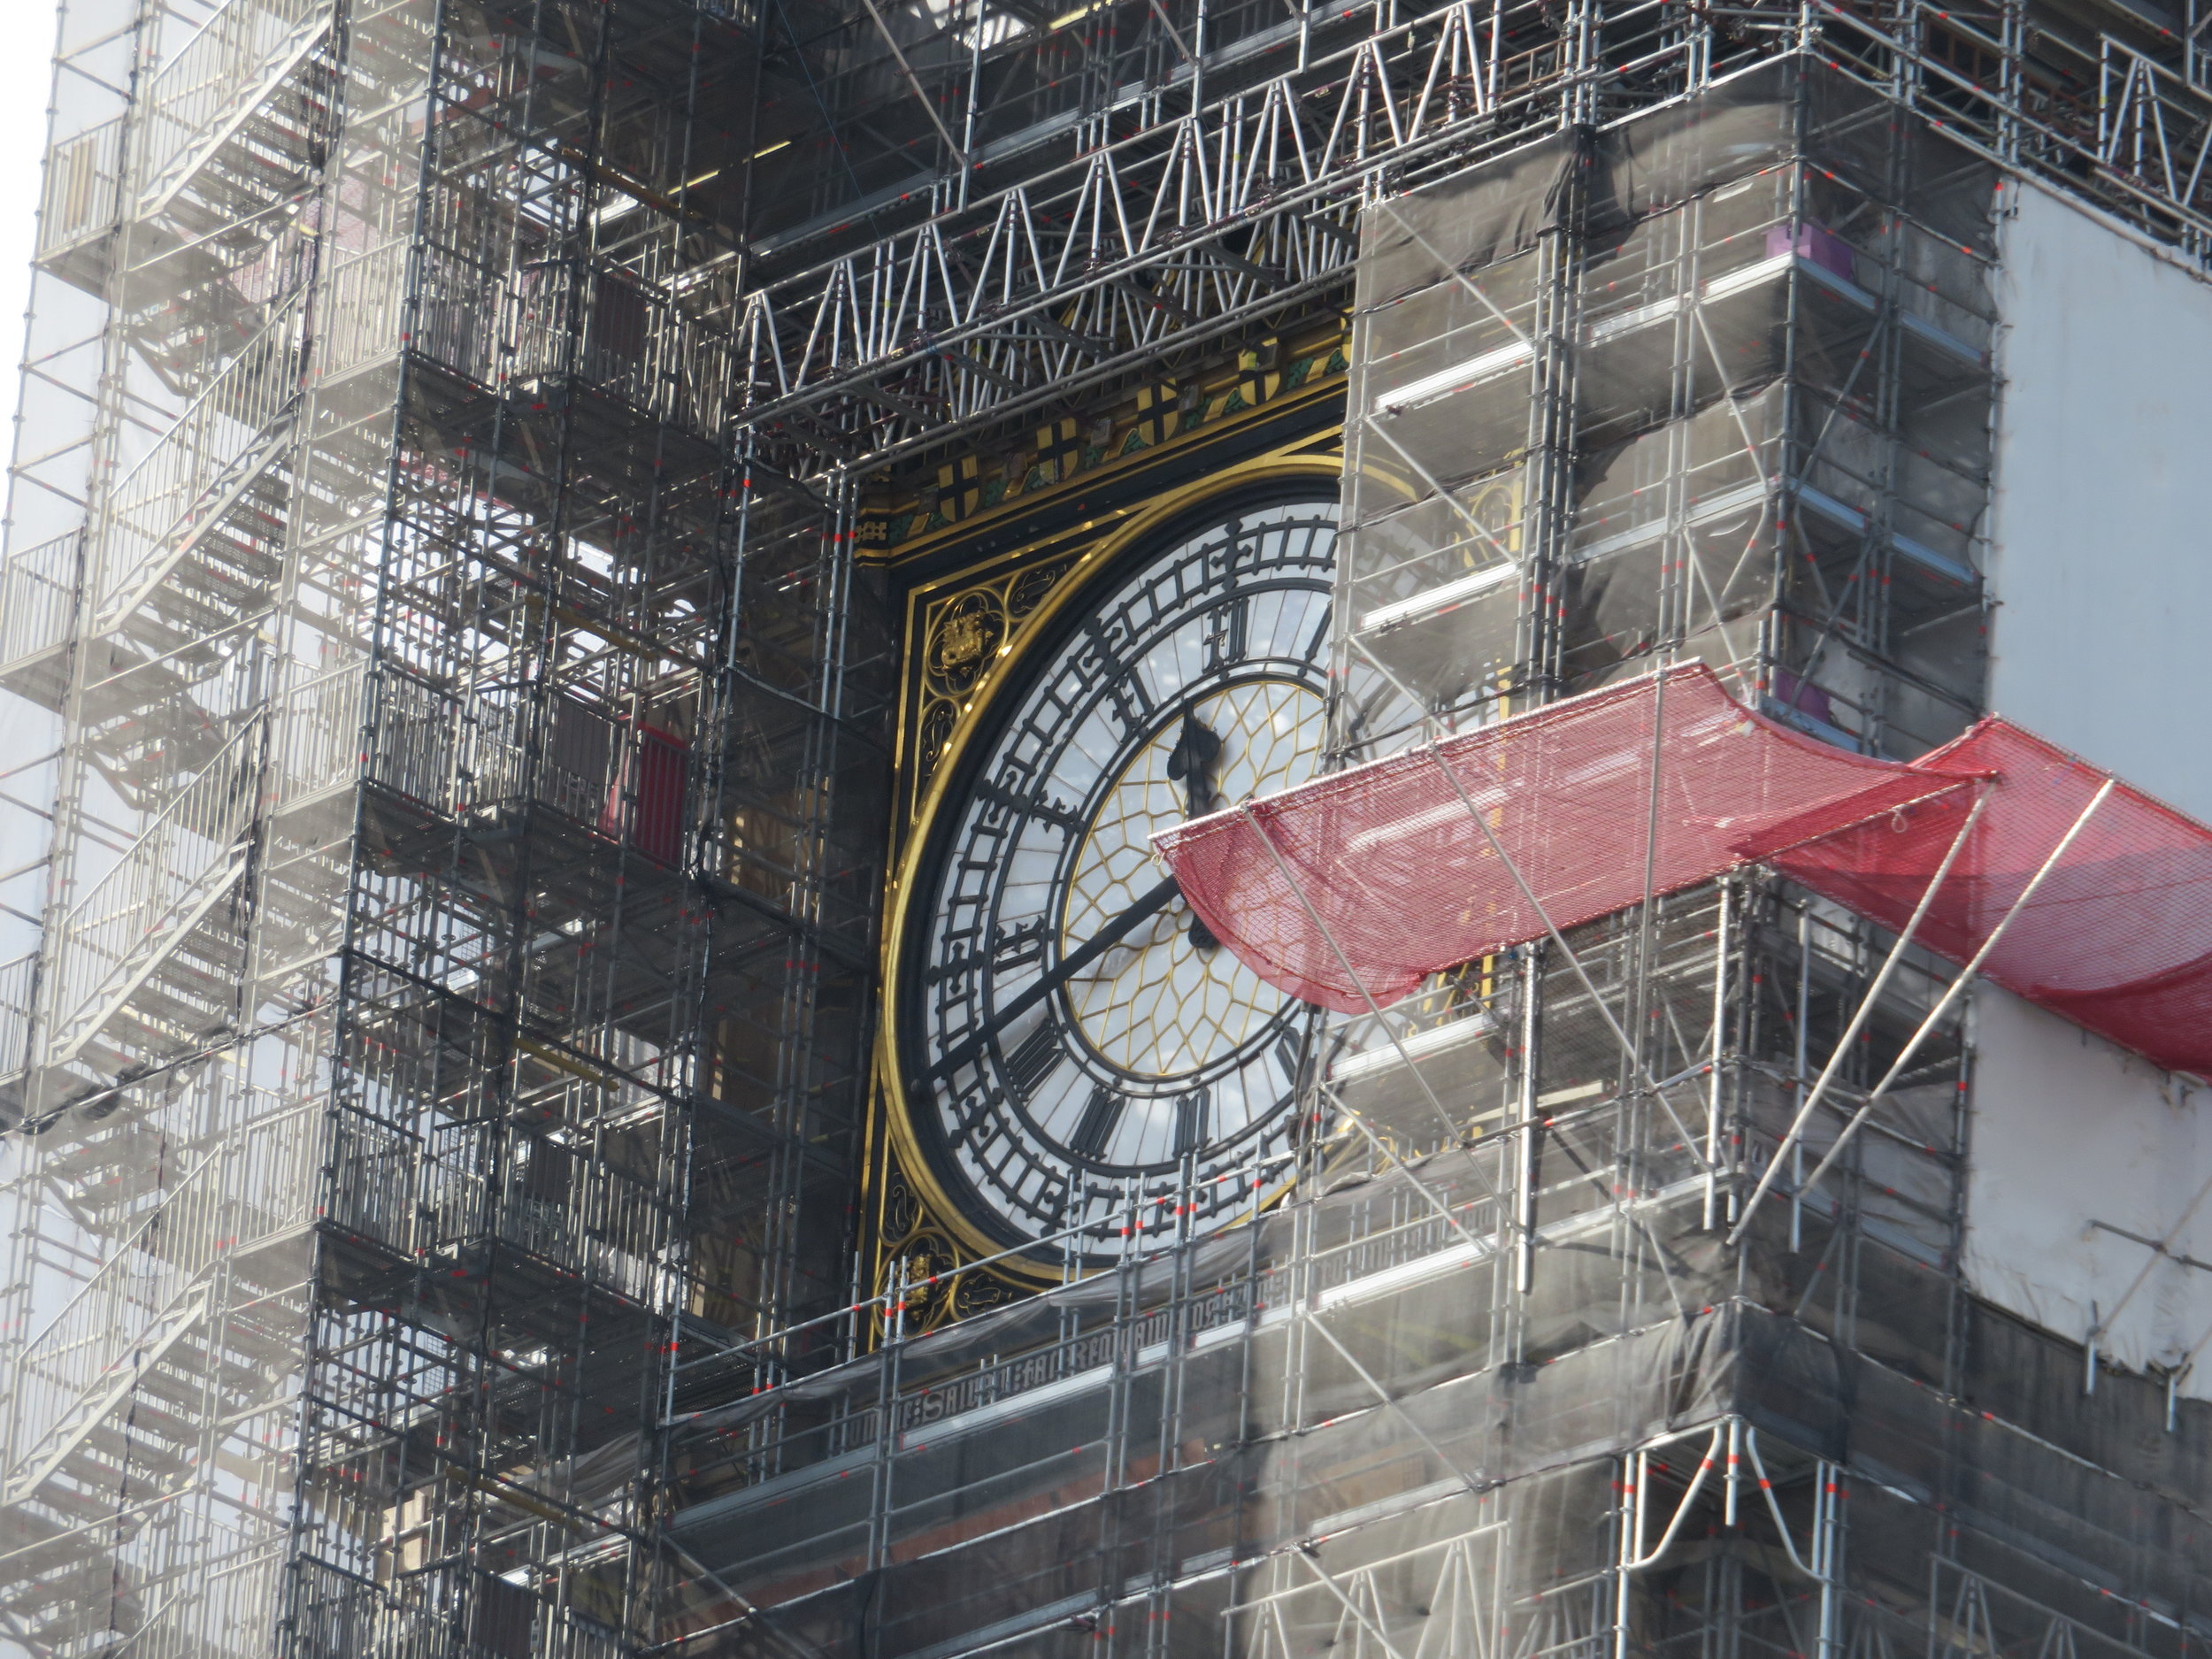 Big Ben was under repair … BAH!  Actually, Big Ben is the name given to the bell inside the clock tower and he'll be silent until the repairs are complete in 2021.